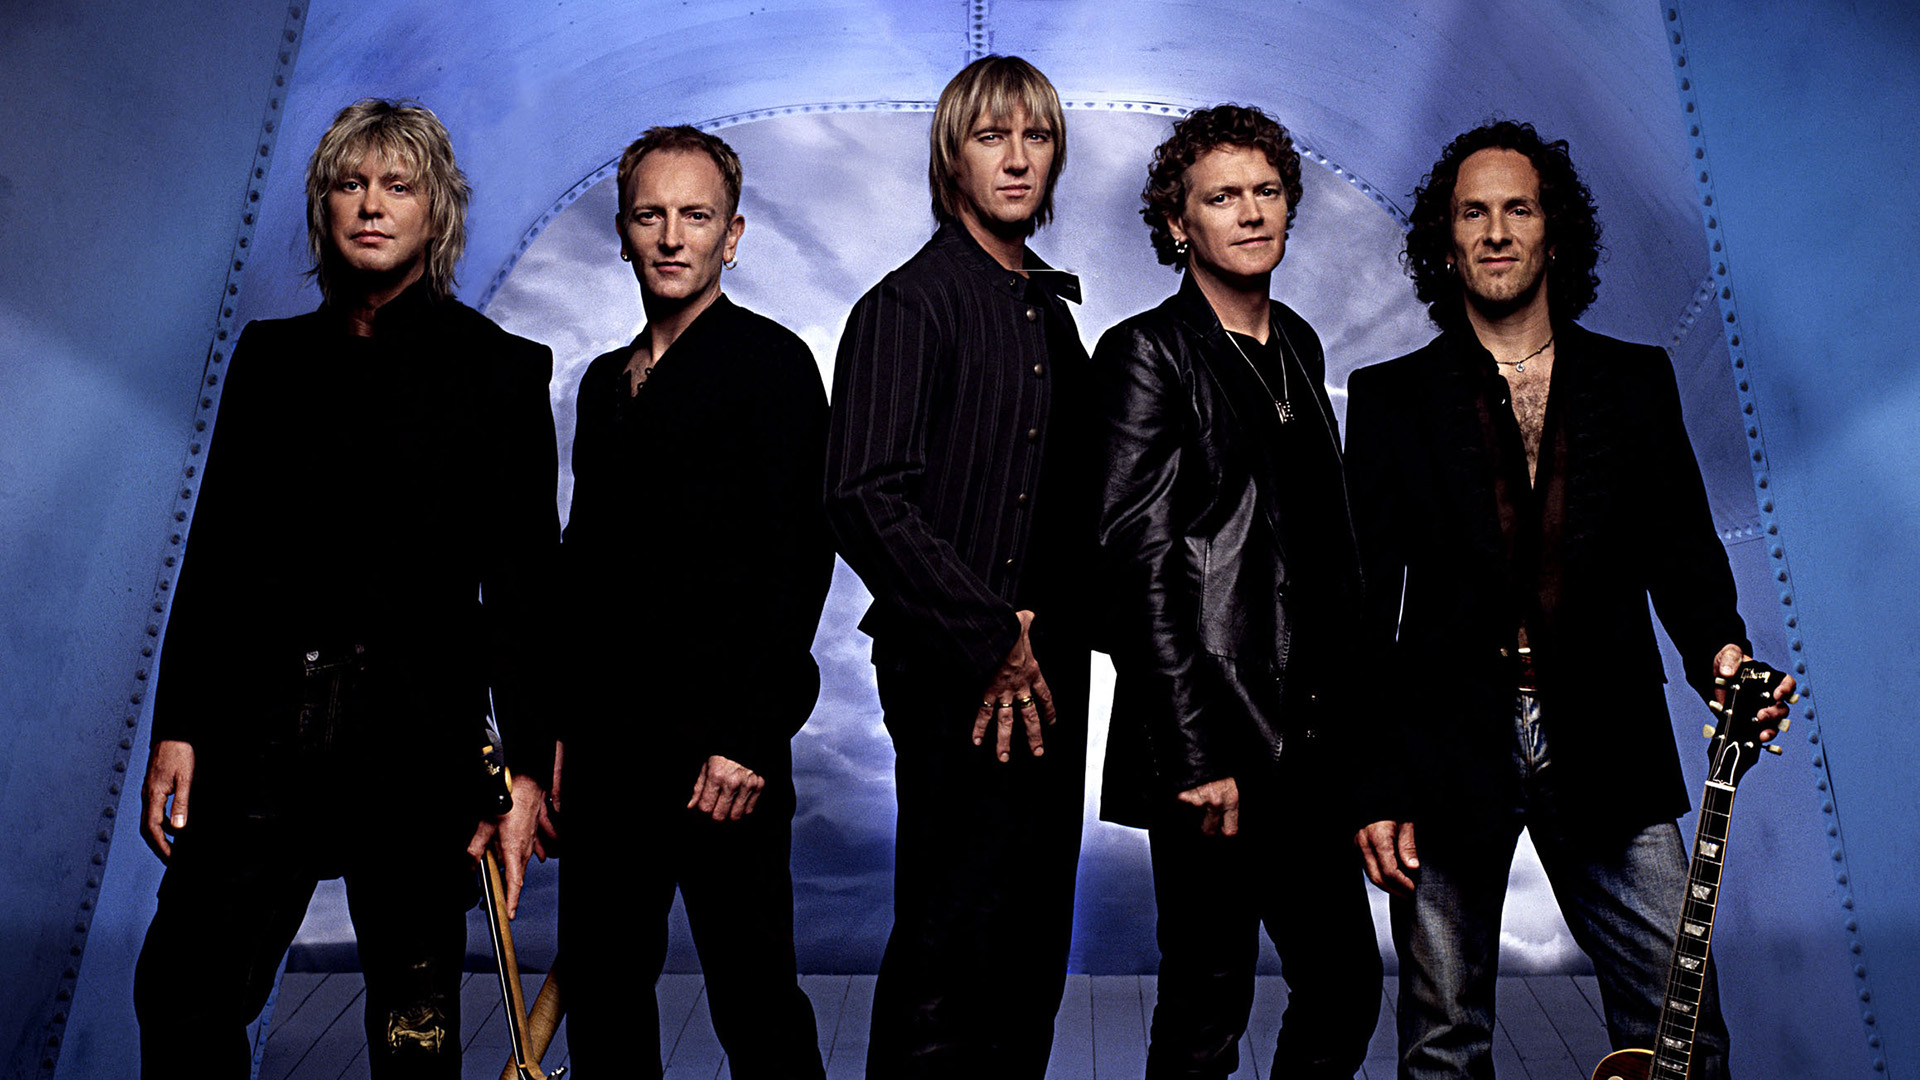 Def Leppard backdrop wallpaper